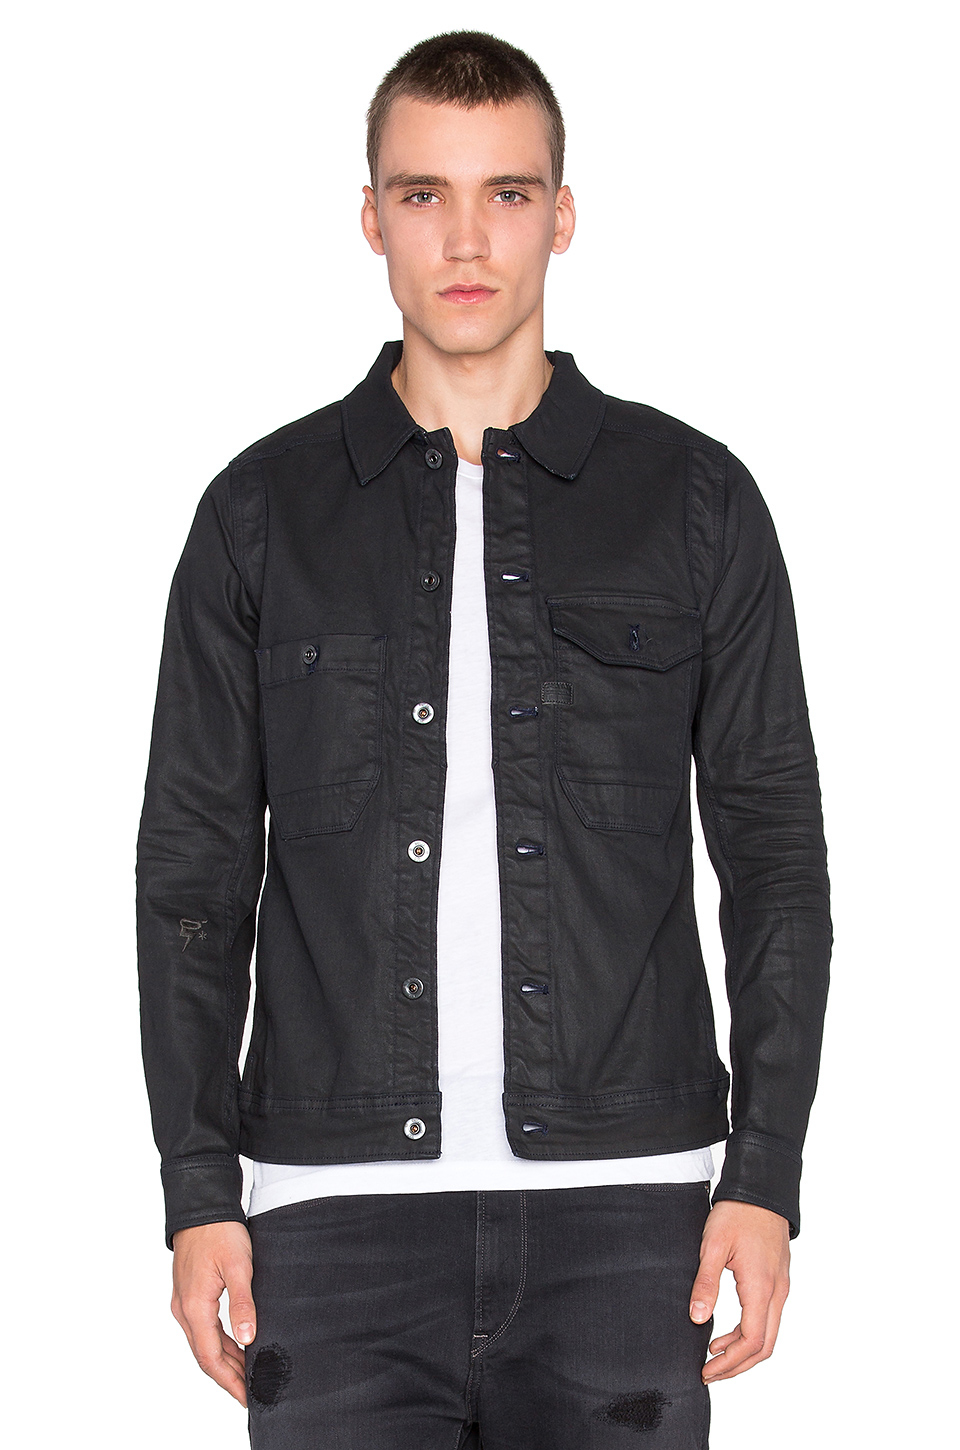 40312da58cacf G-star Raw Wolker 3d Slim Jacket In Black For Men